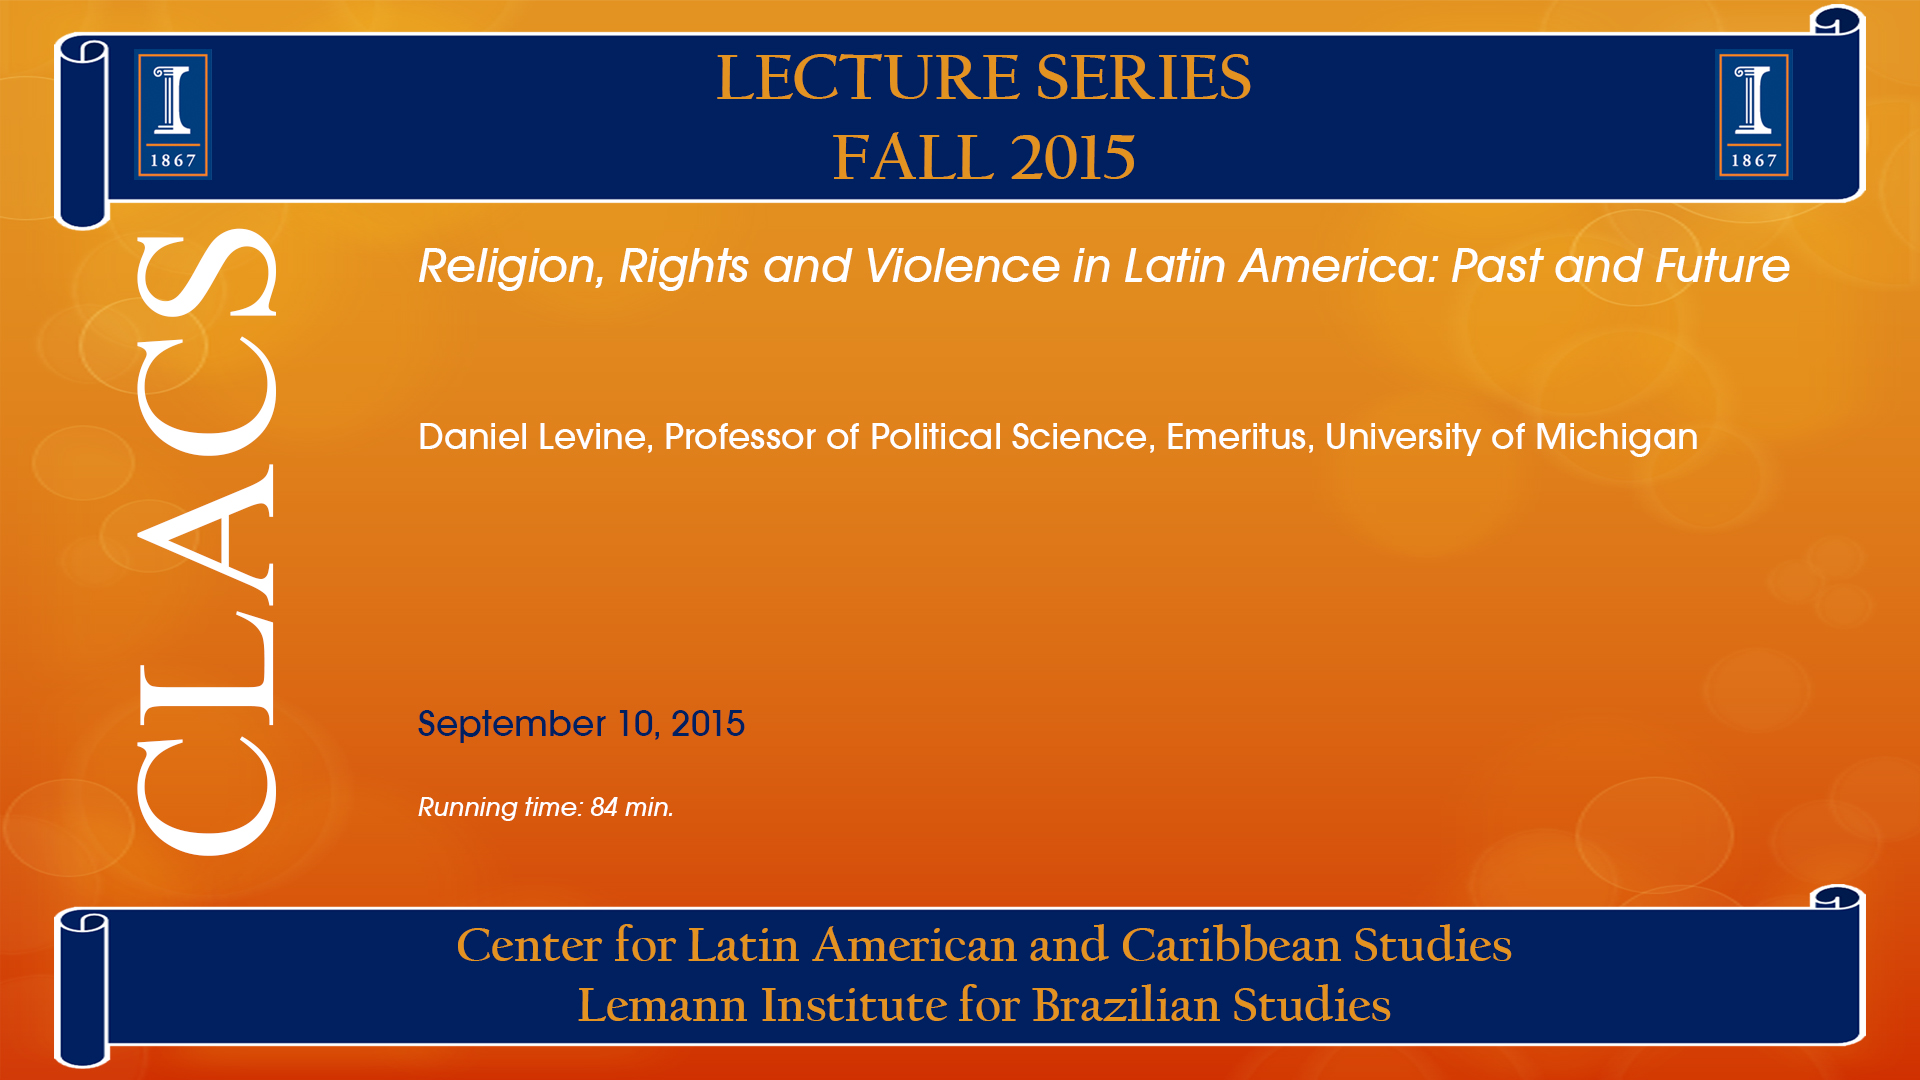 Religion, Rights and Violence in Latin America: Past and Future